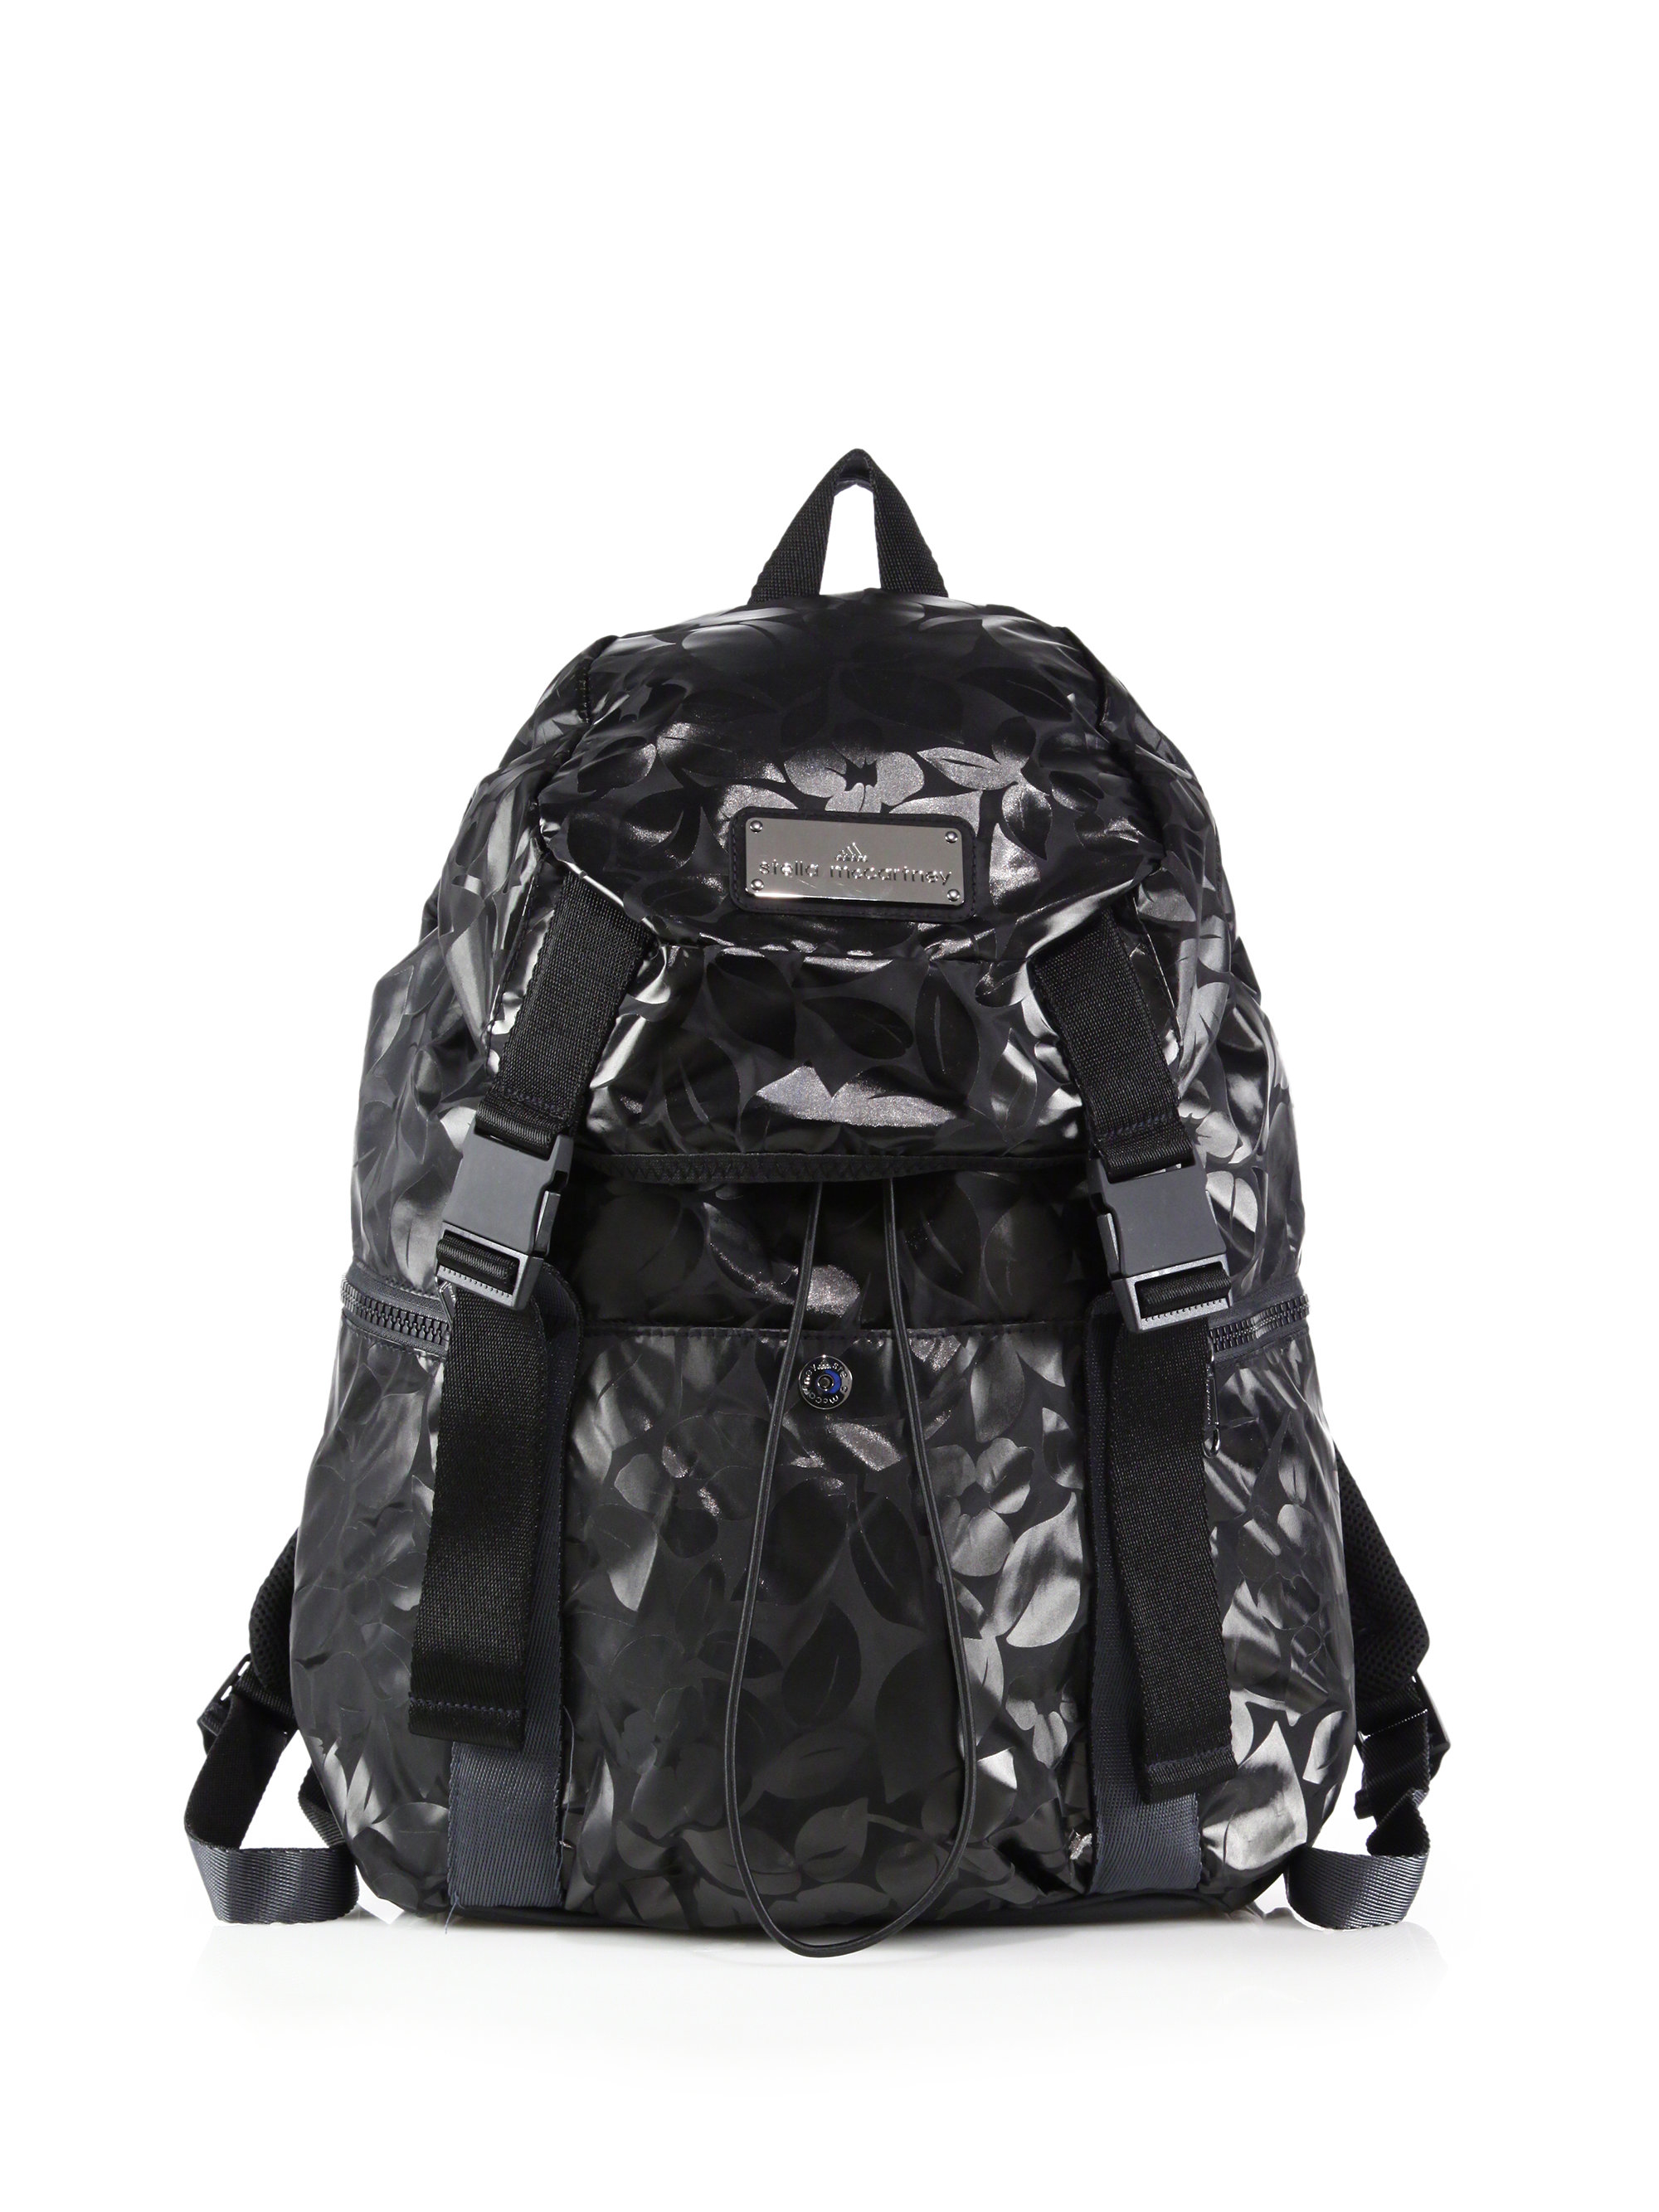 33f7e7059f6c Lyst - adidas By Stella McCartney Printed Weekender Backpack in Black